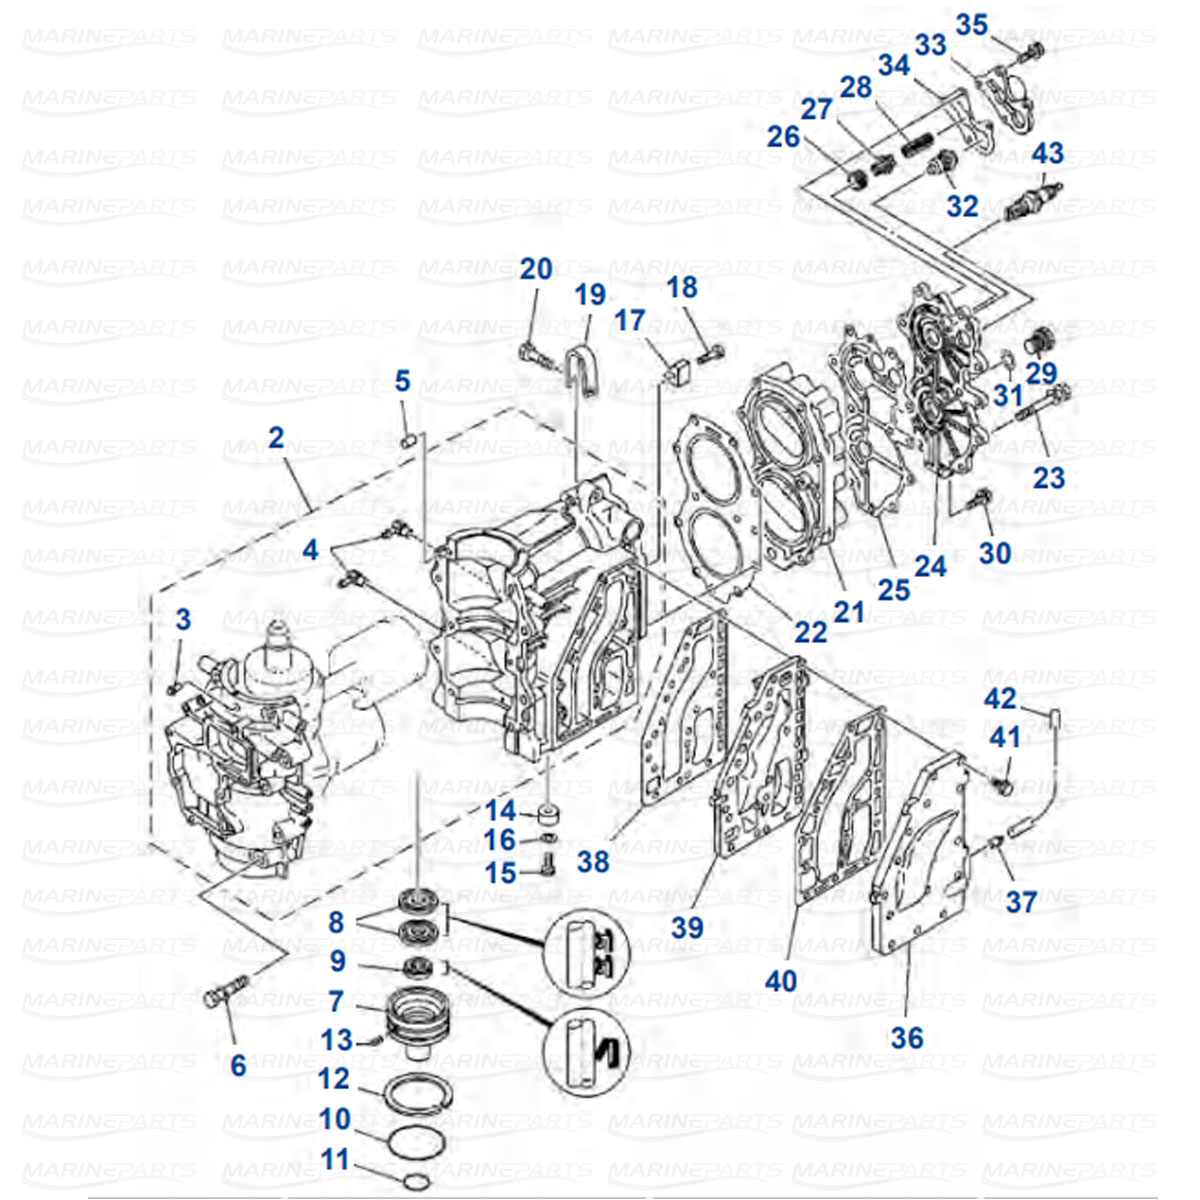 Yamaha Engine Parts For Outboard Motor Swedenmarineparts